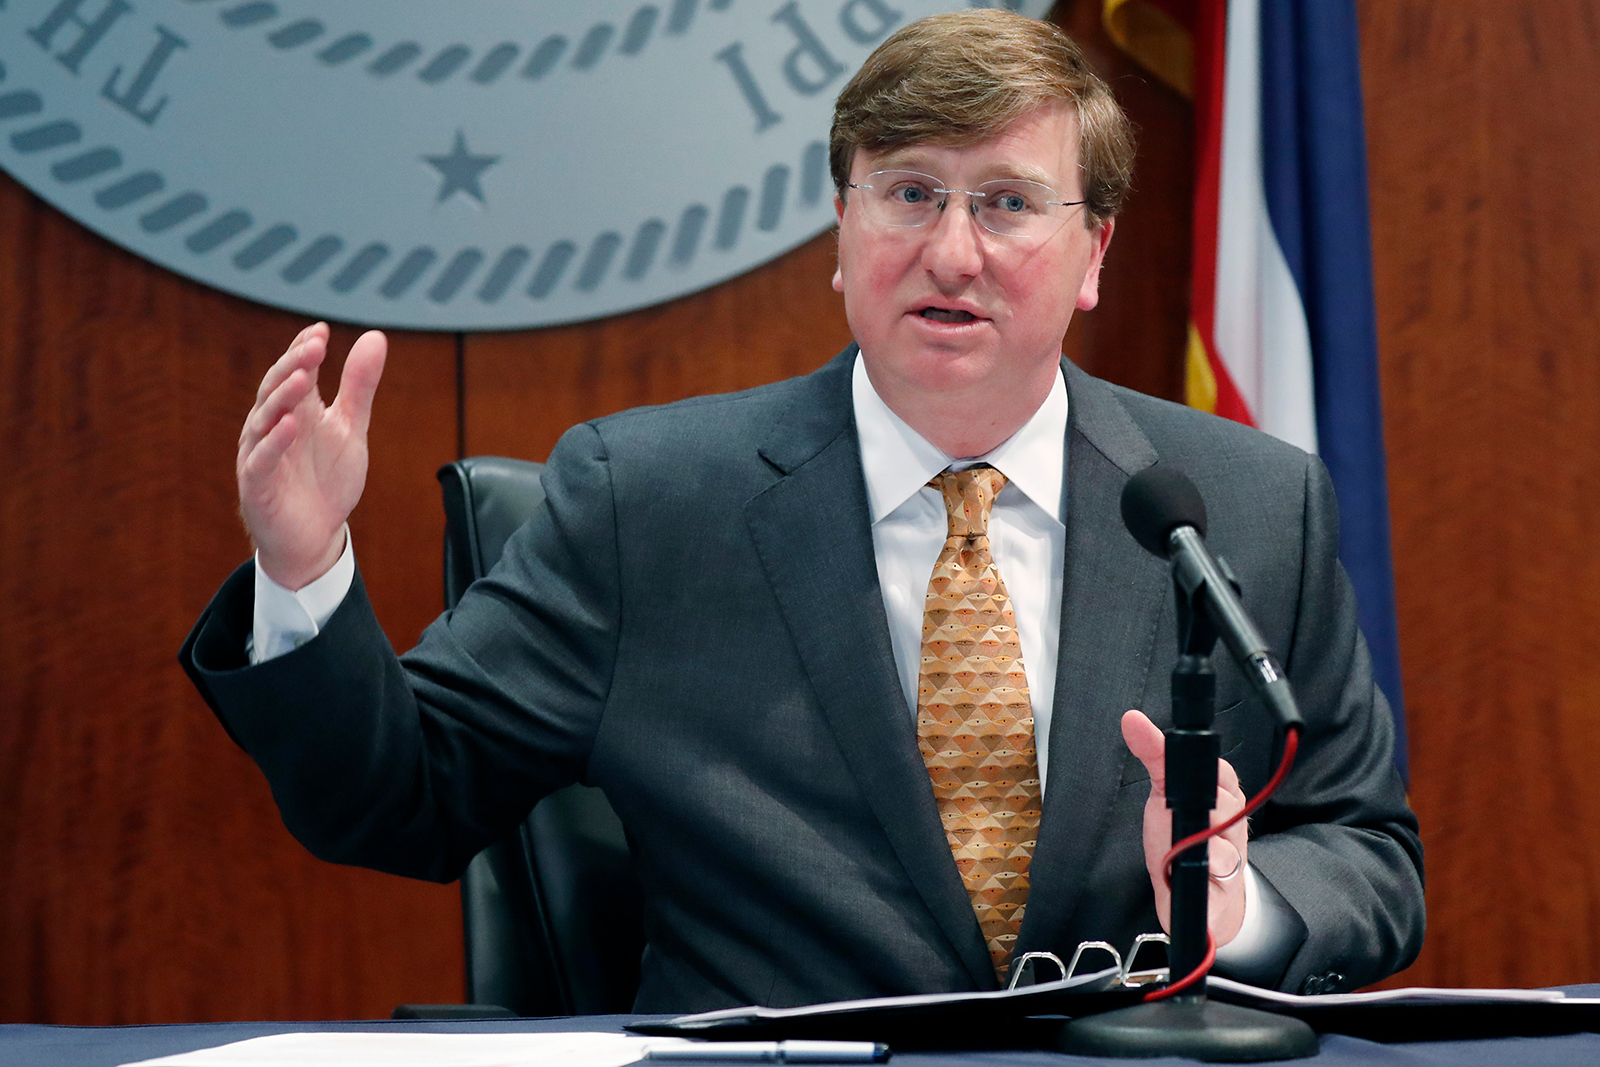 Gov. Tate Reeves provides reporters an update on the state's response to COVID-19 in Jackson, Mississippi on April 29.